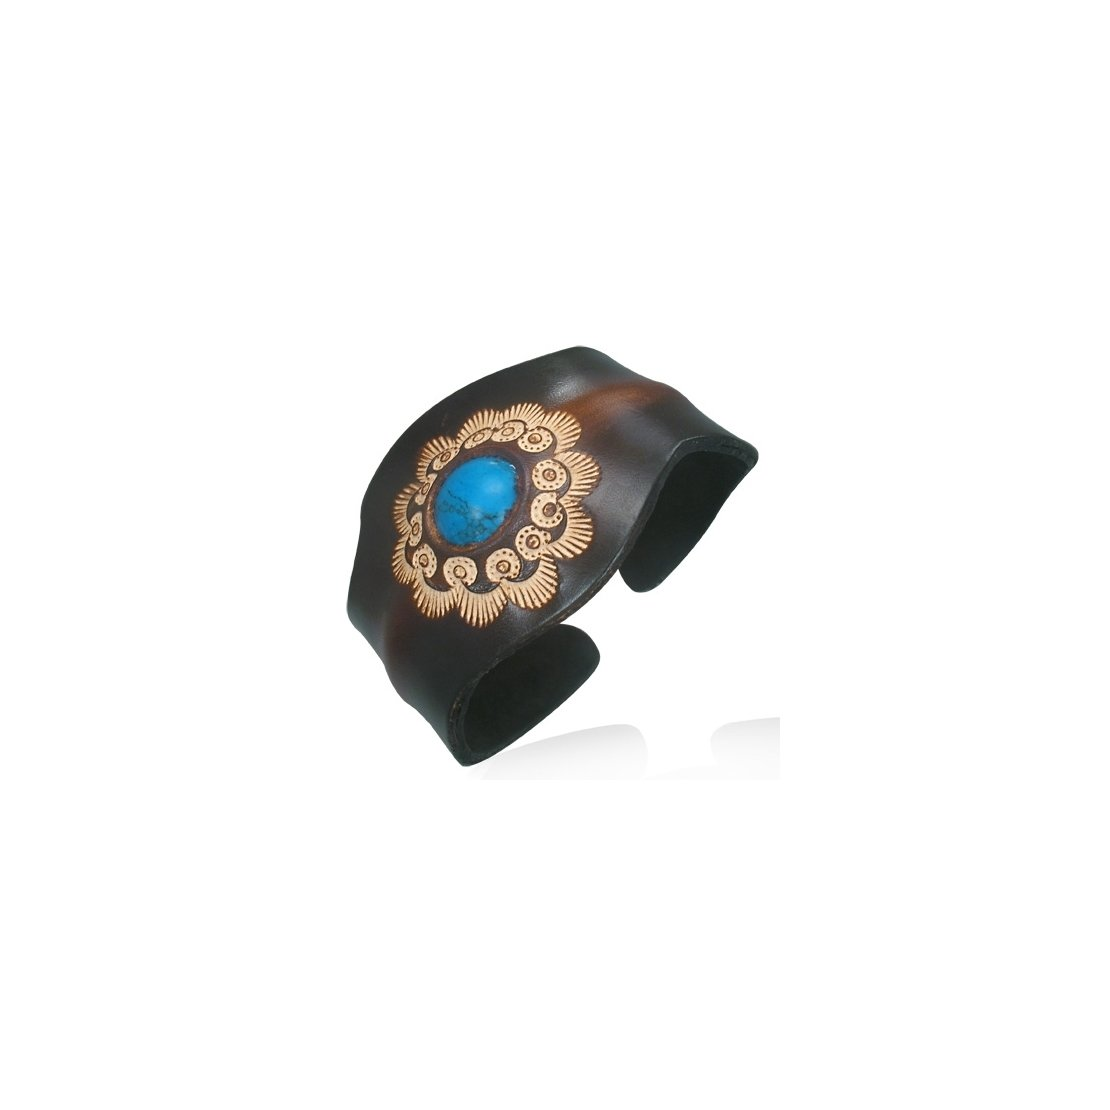 Genuine Leather Engraved Flower Sun Emblem Cuff Bangle with Turquoise Length 6.8